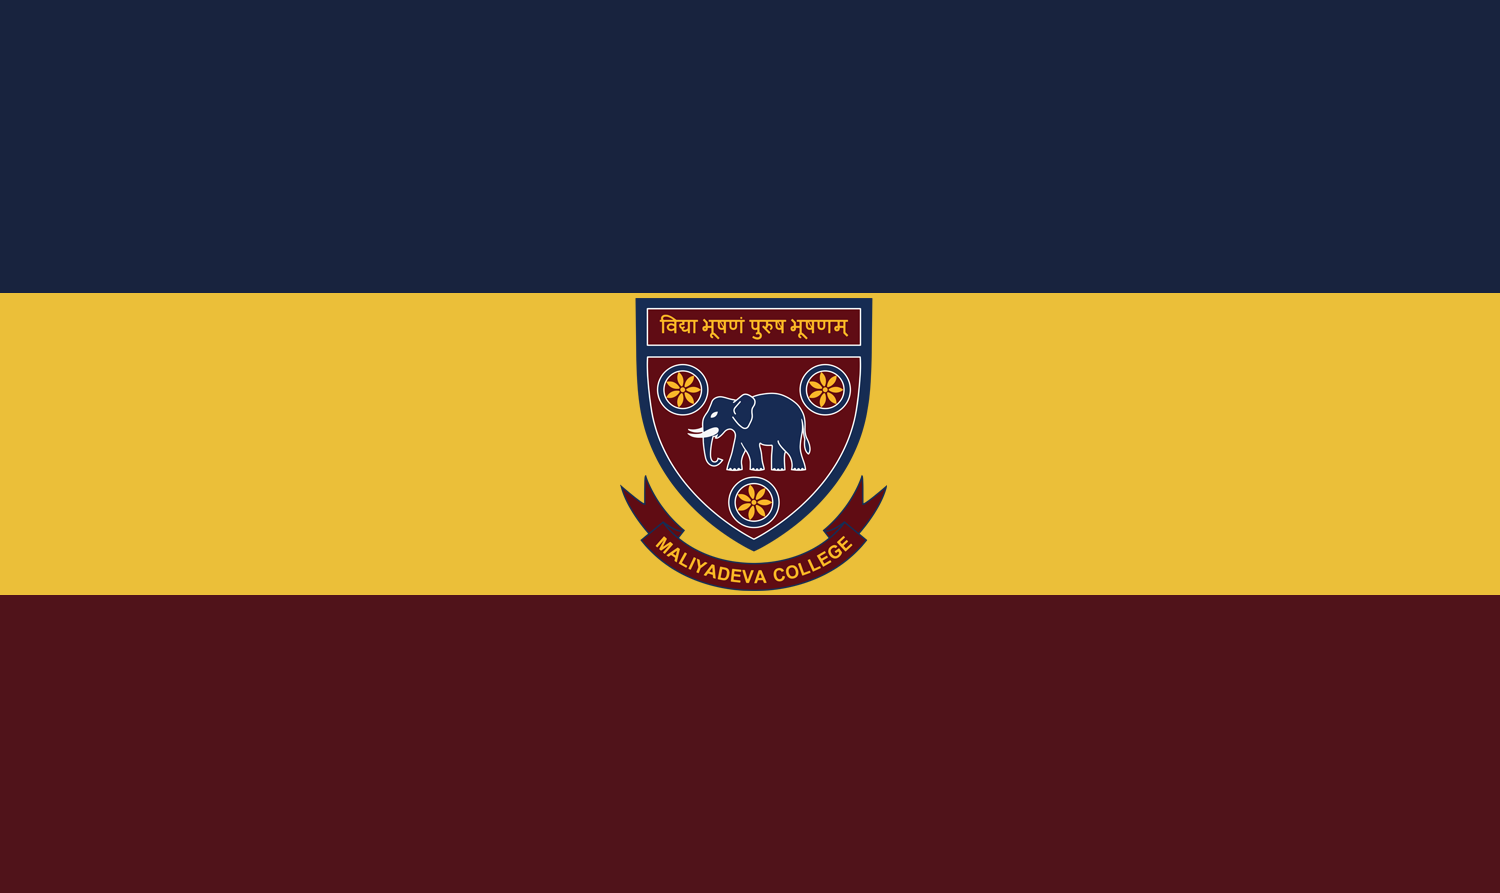 File:Maliyadeva College flag.png.